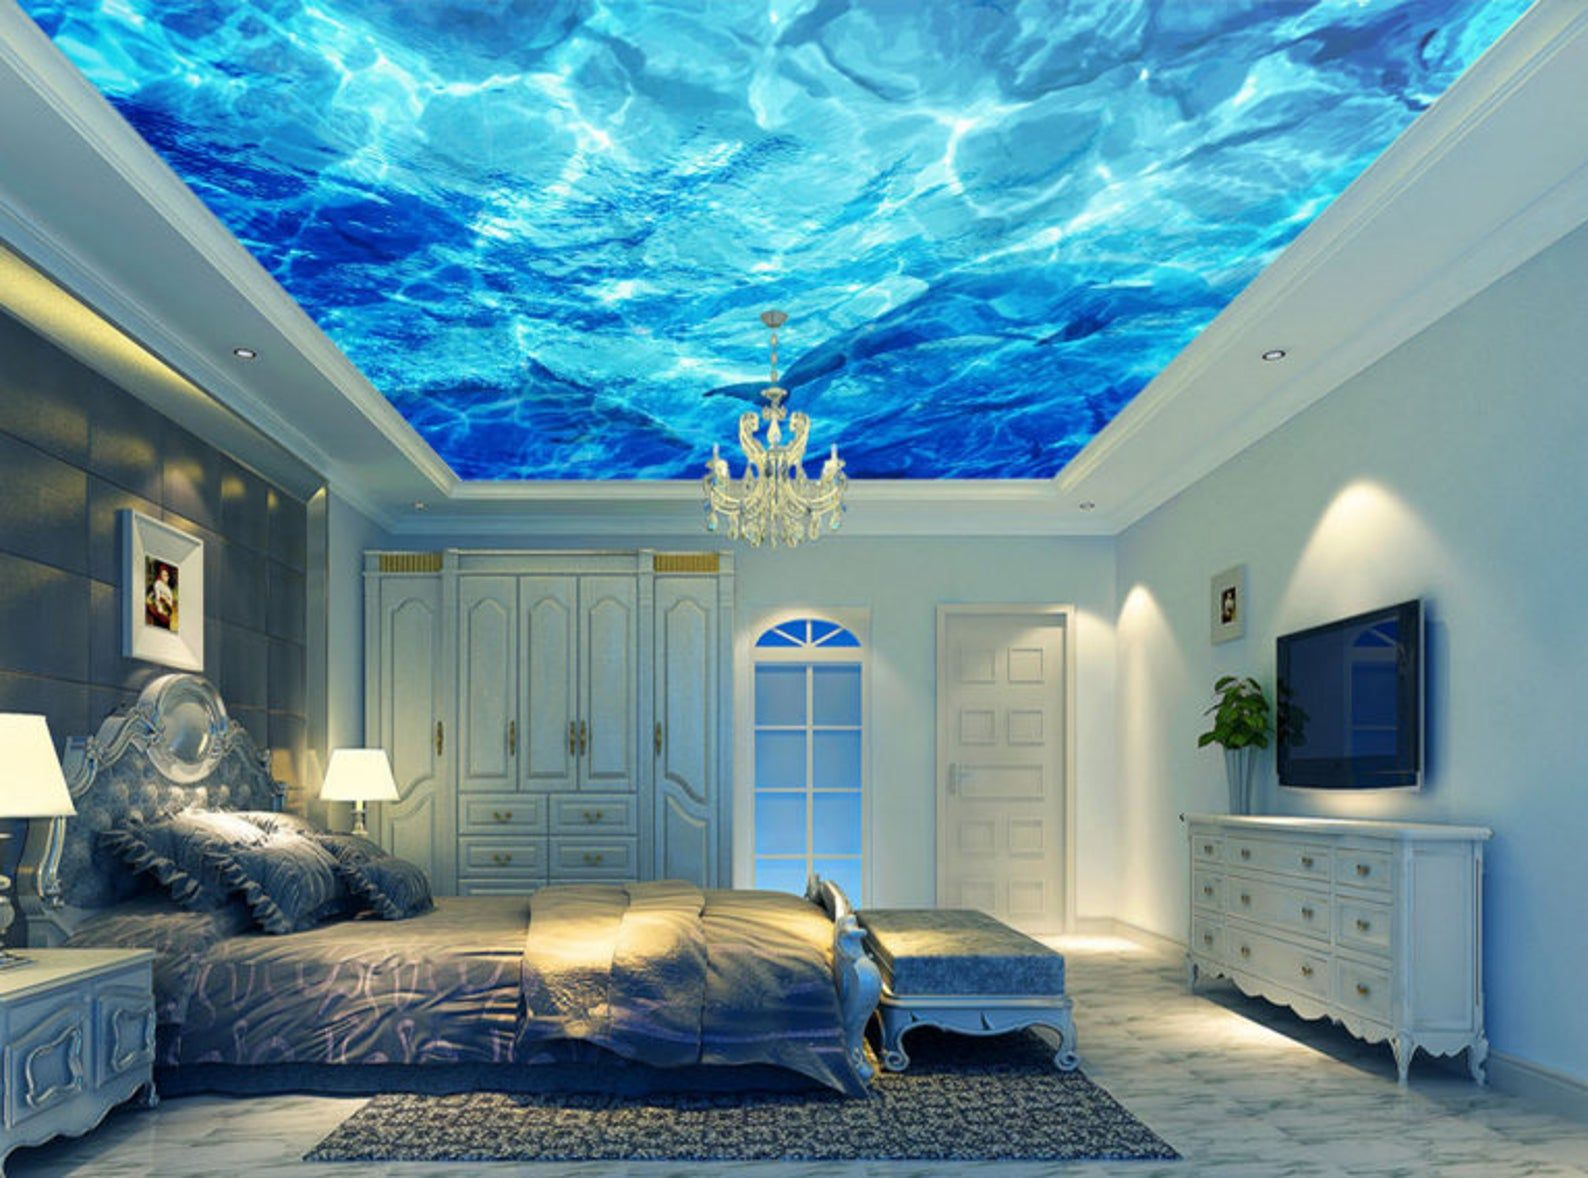 Pin On Ceiling And Wall Designs